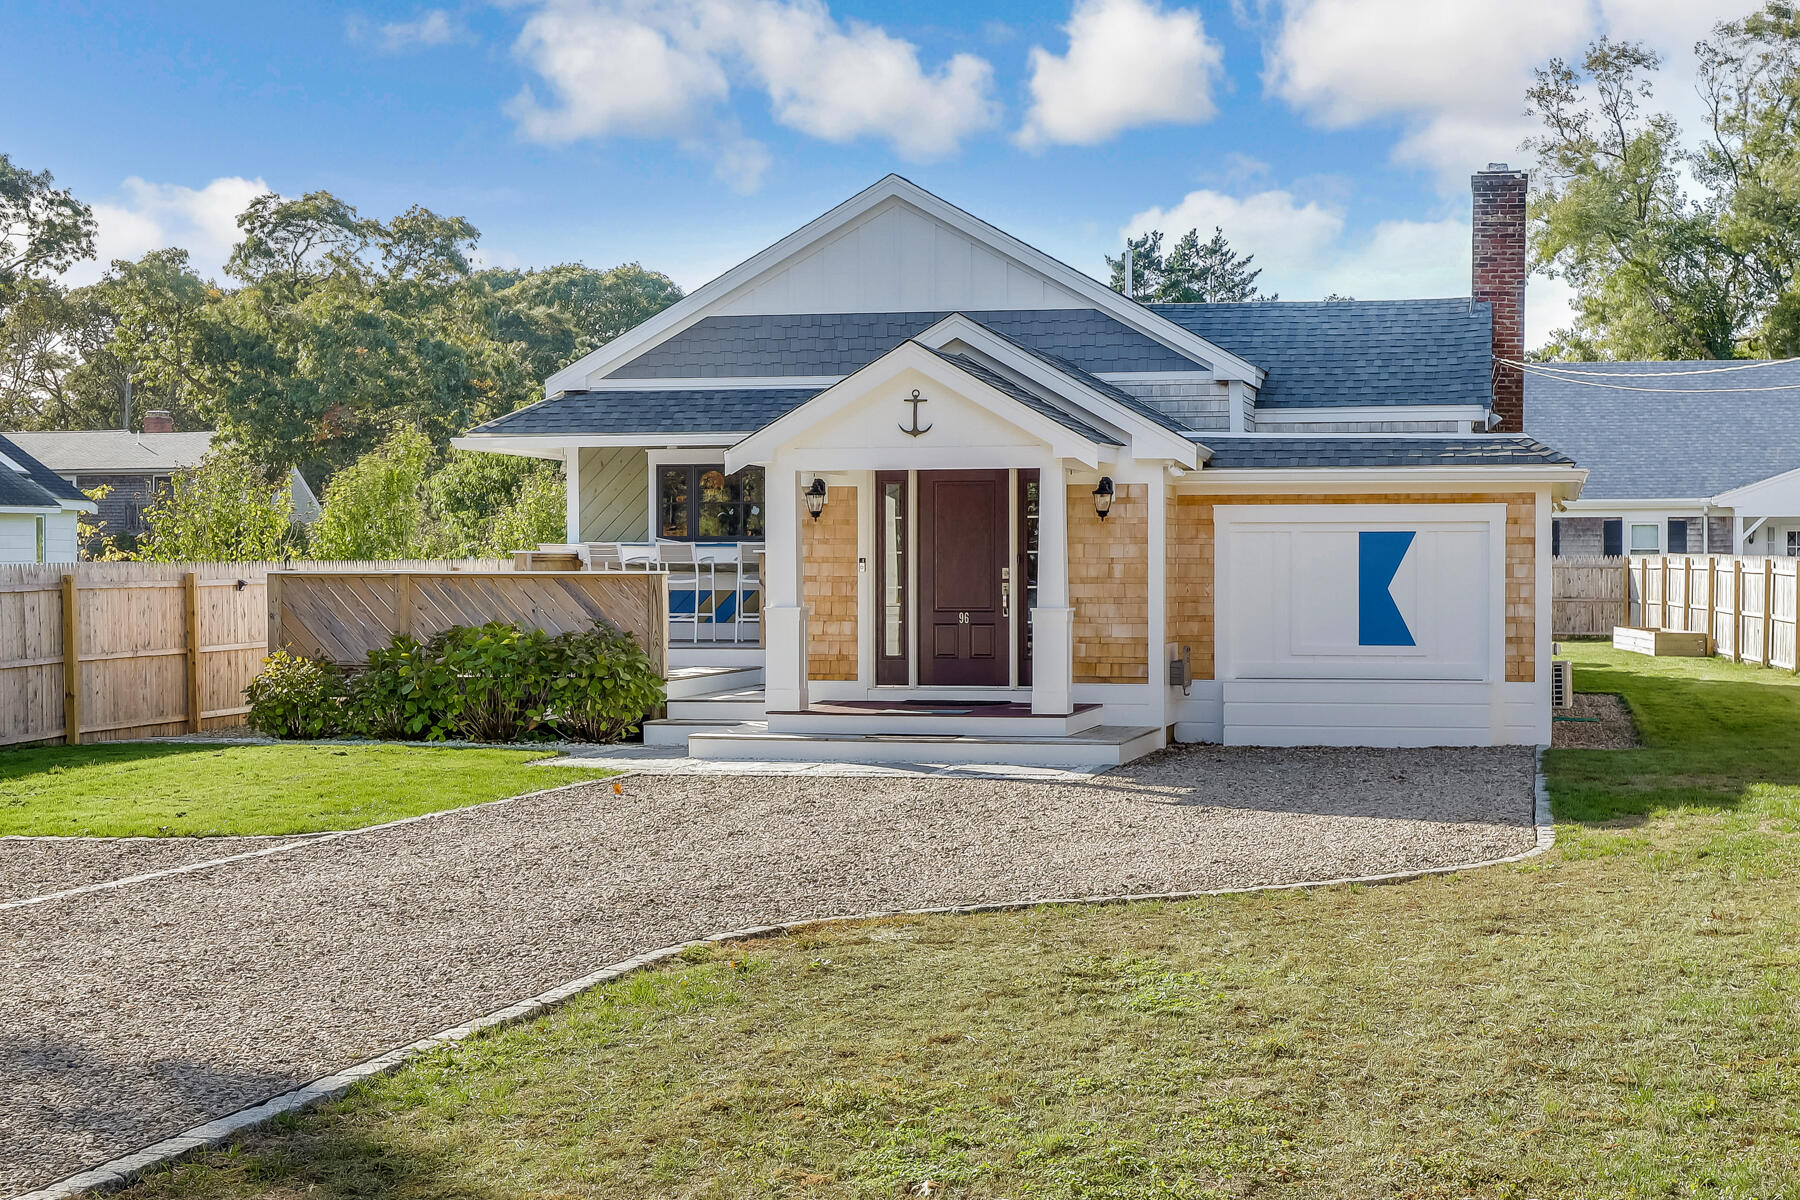 click to view more details 96 Riverside Drive, West Harwich, MA 02671